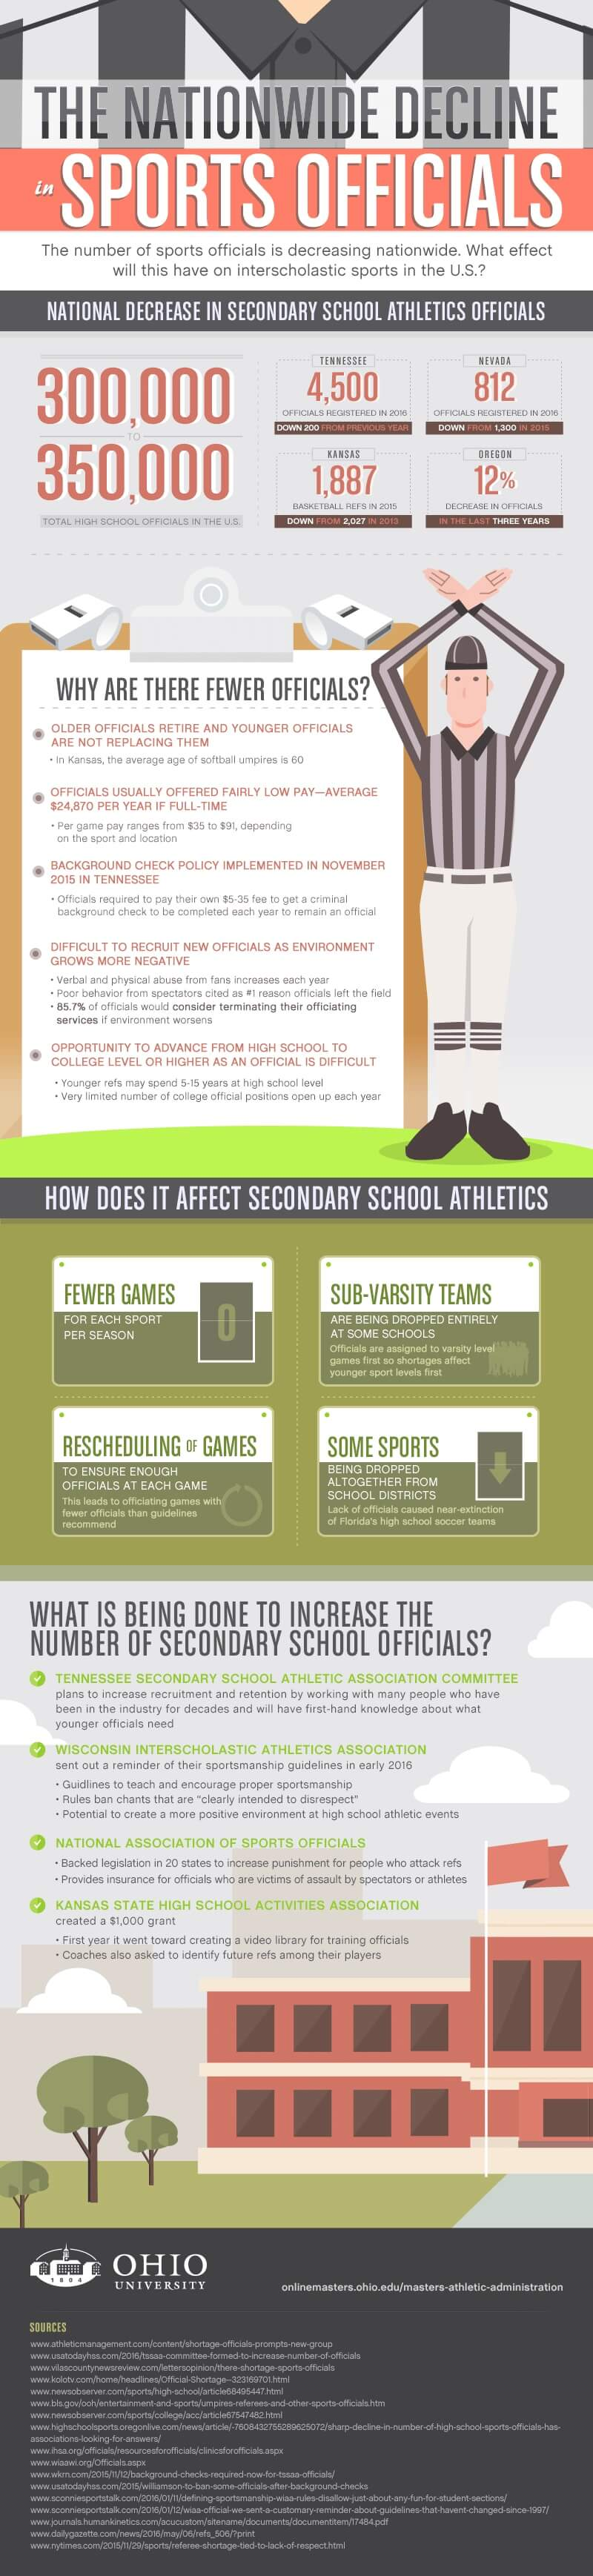 The Nationwide Decline in Sports Officials infographic